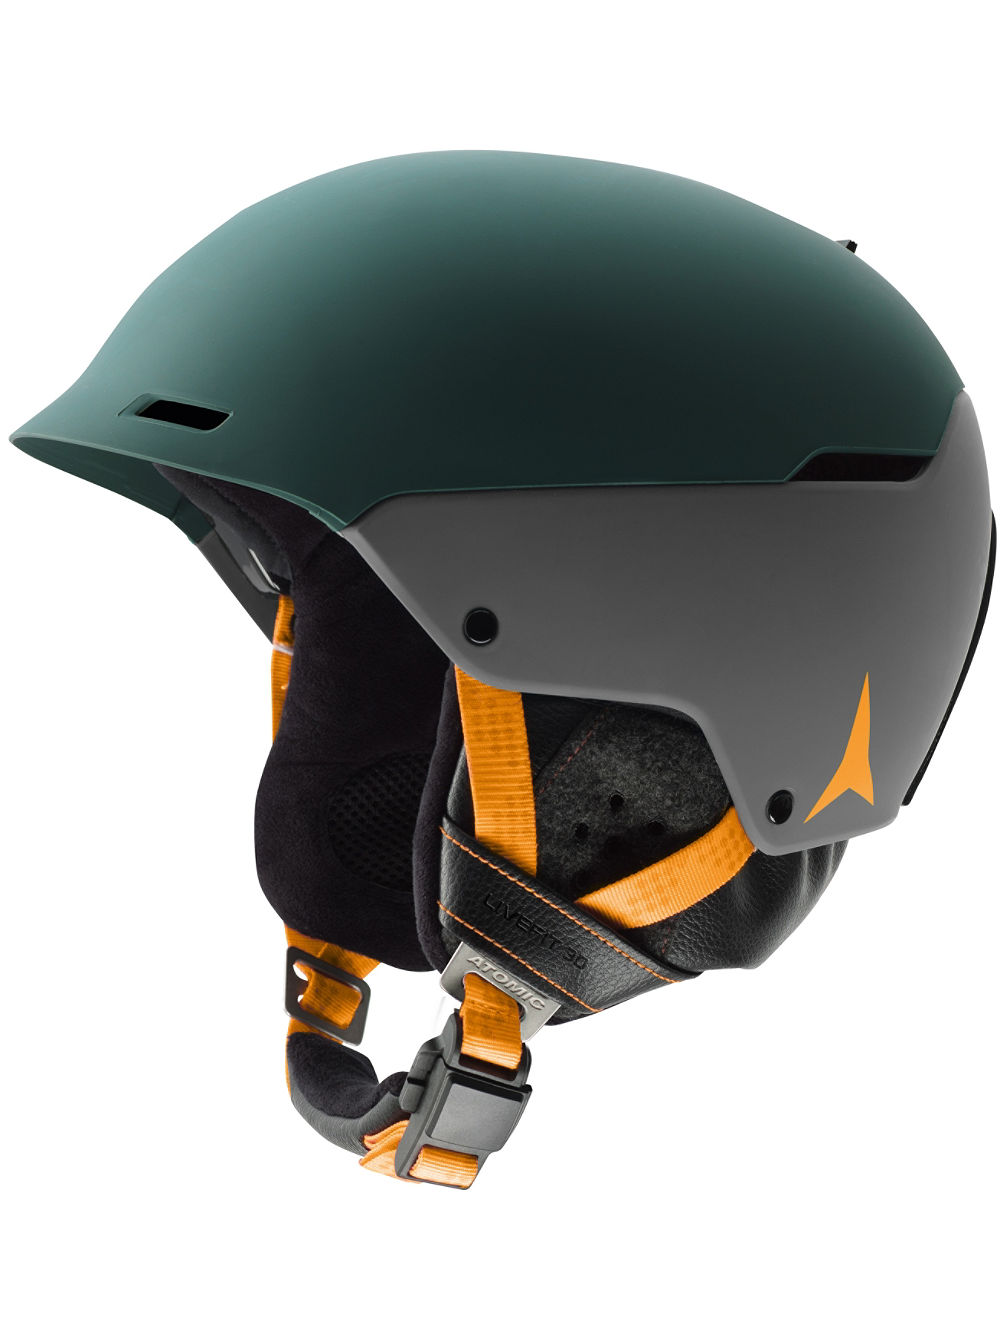 Automatic LF 3D Helm